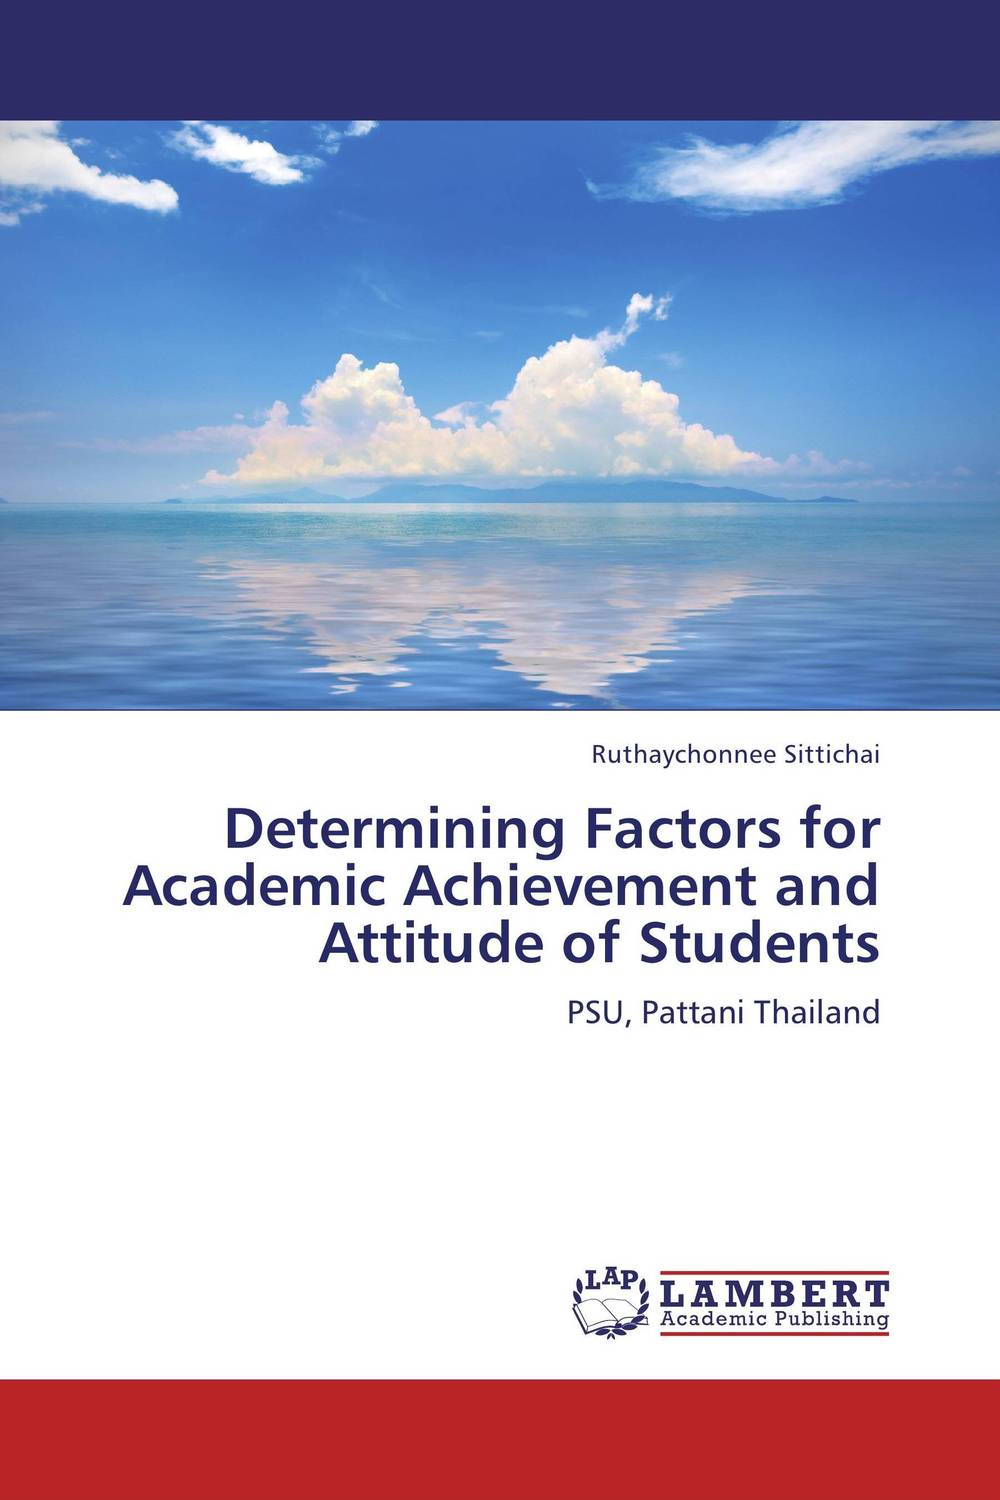 Determining Factors for Academic Achievement and Attitude of Students